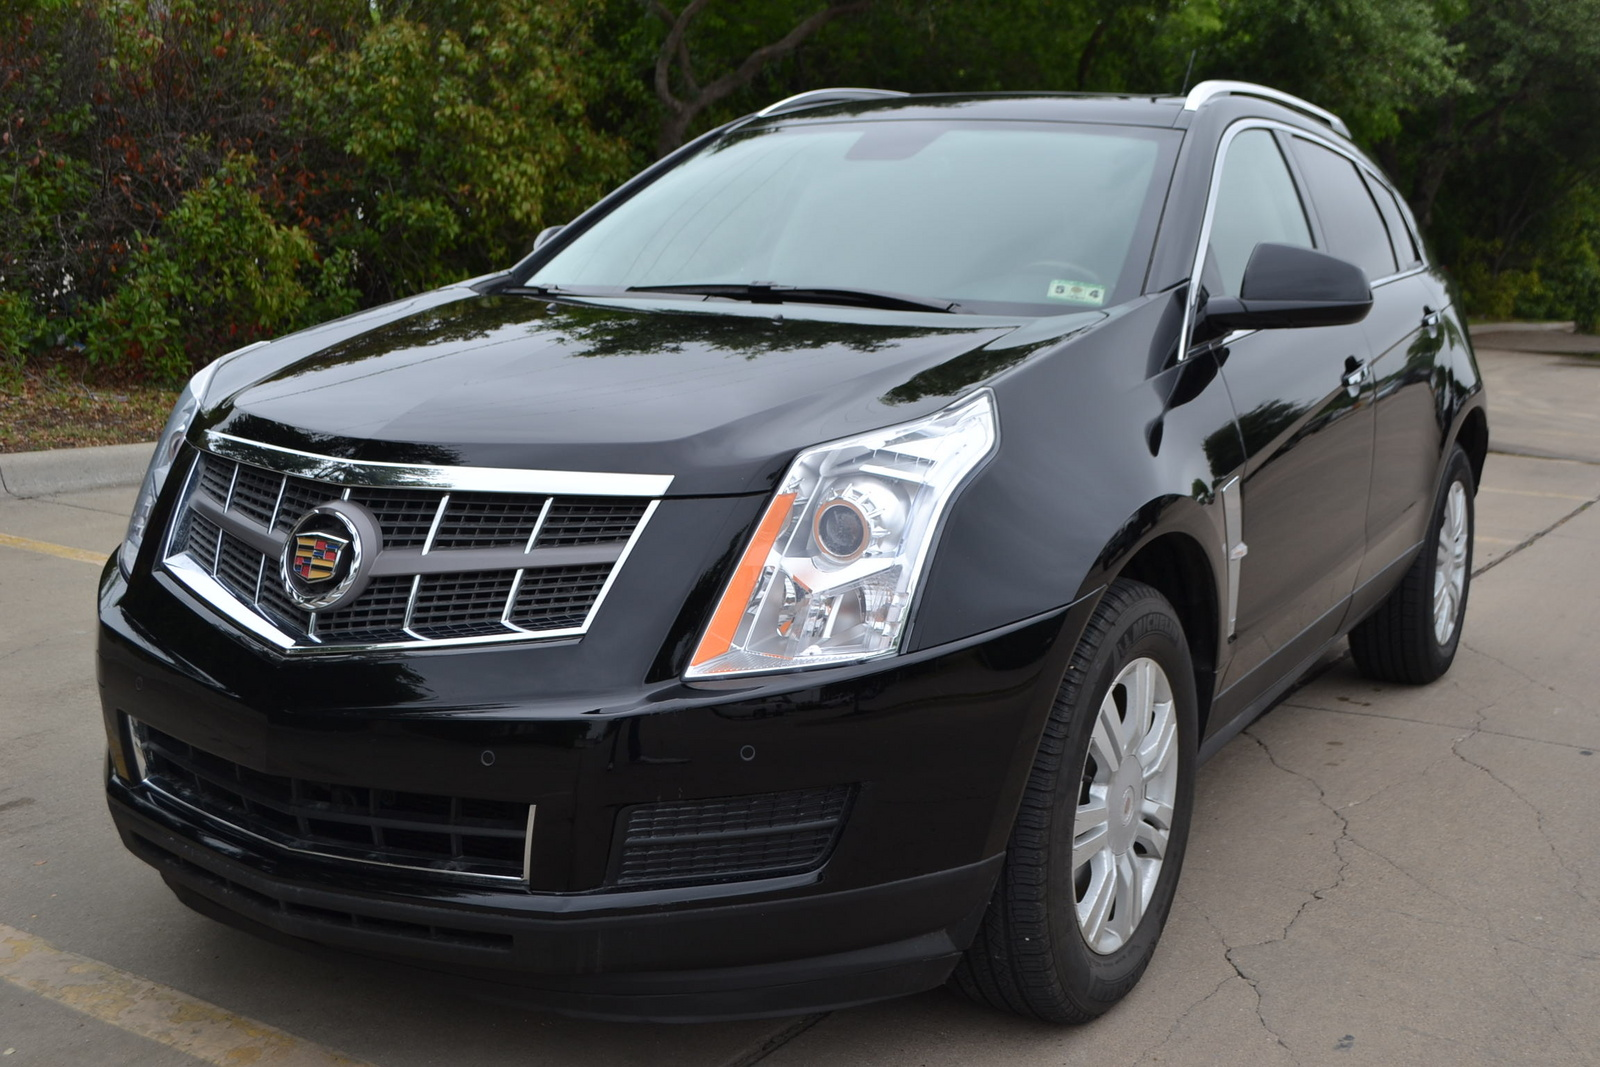 2010 cadillac srx pictures cargurus. Black Bedroom Furniture Sets. Home Design Ideas